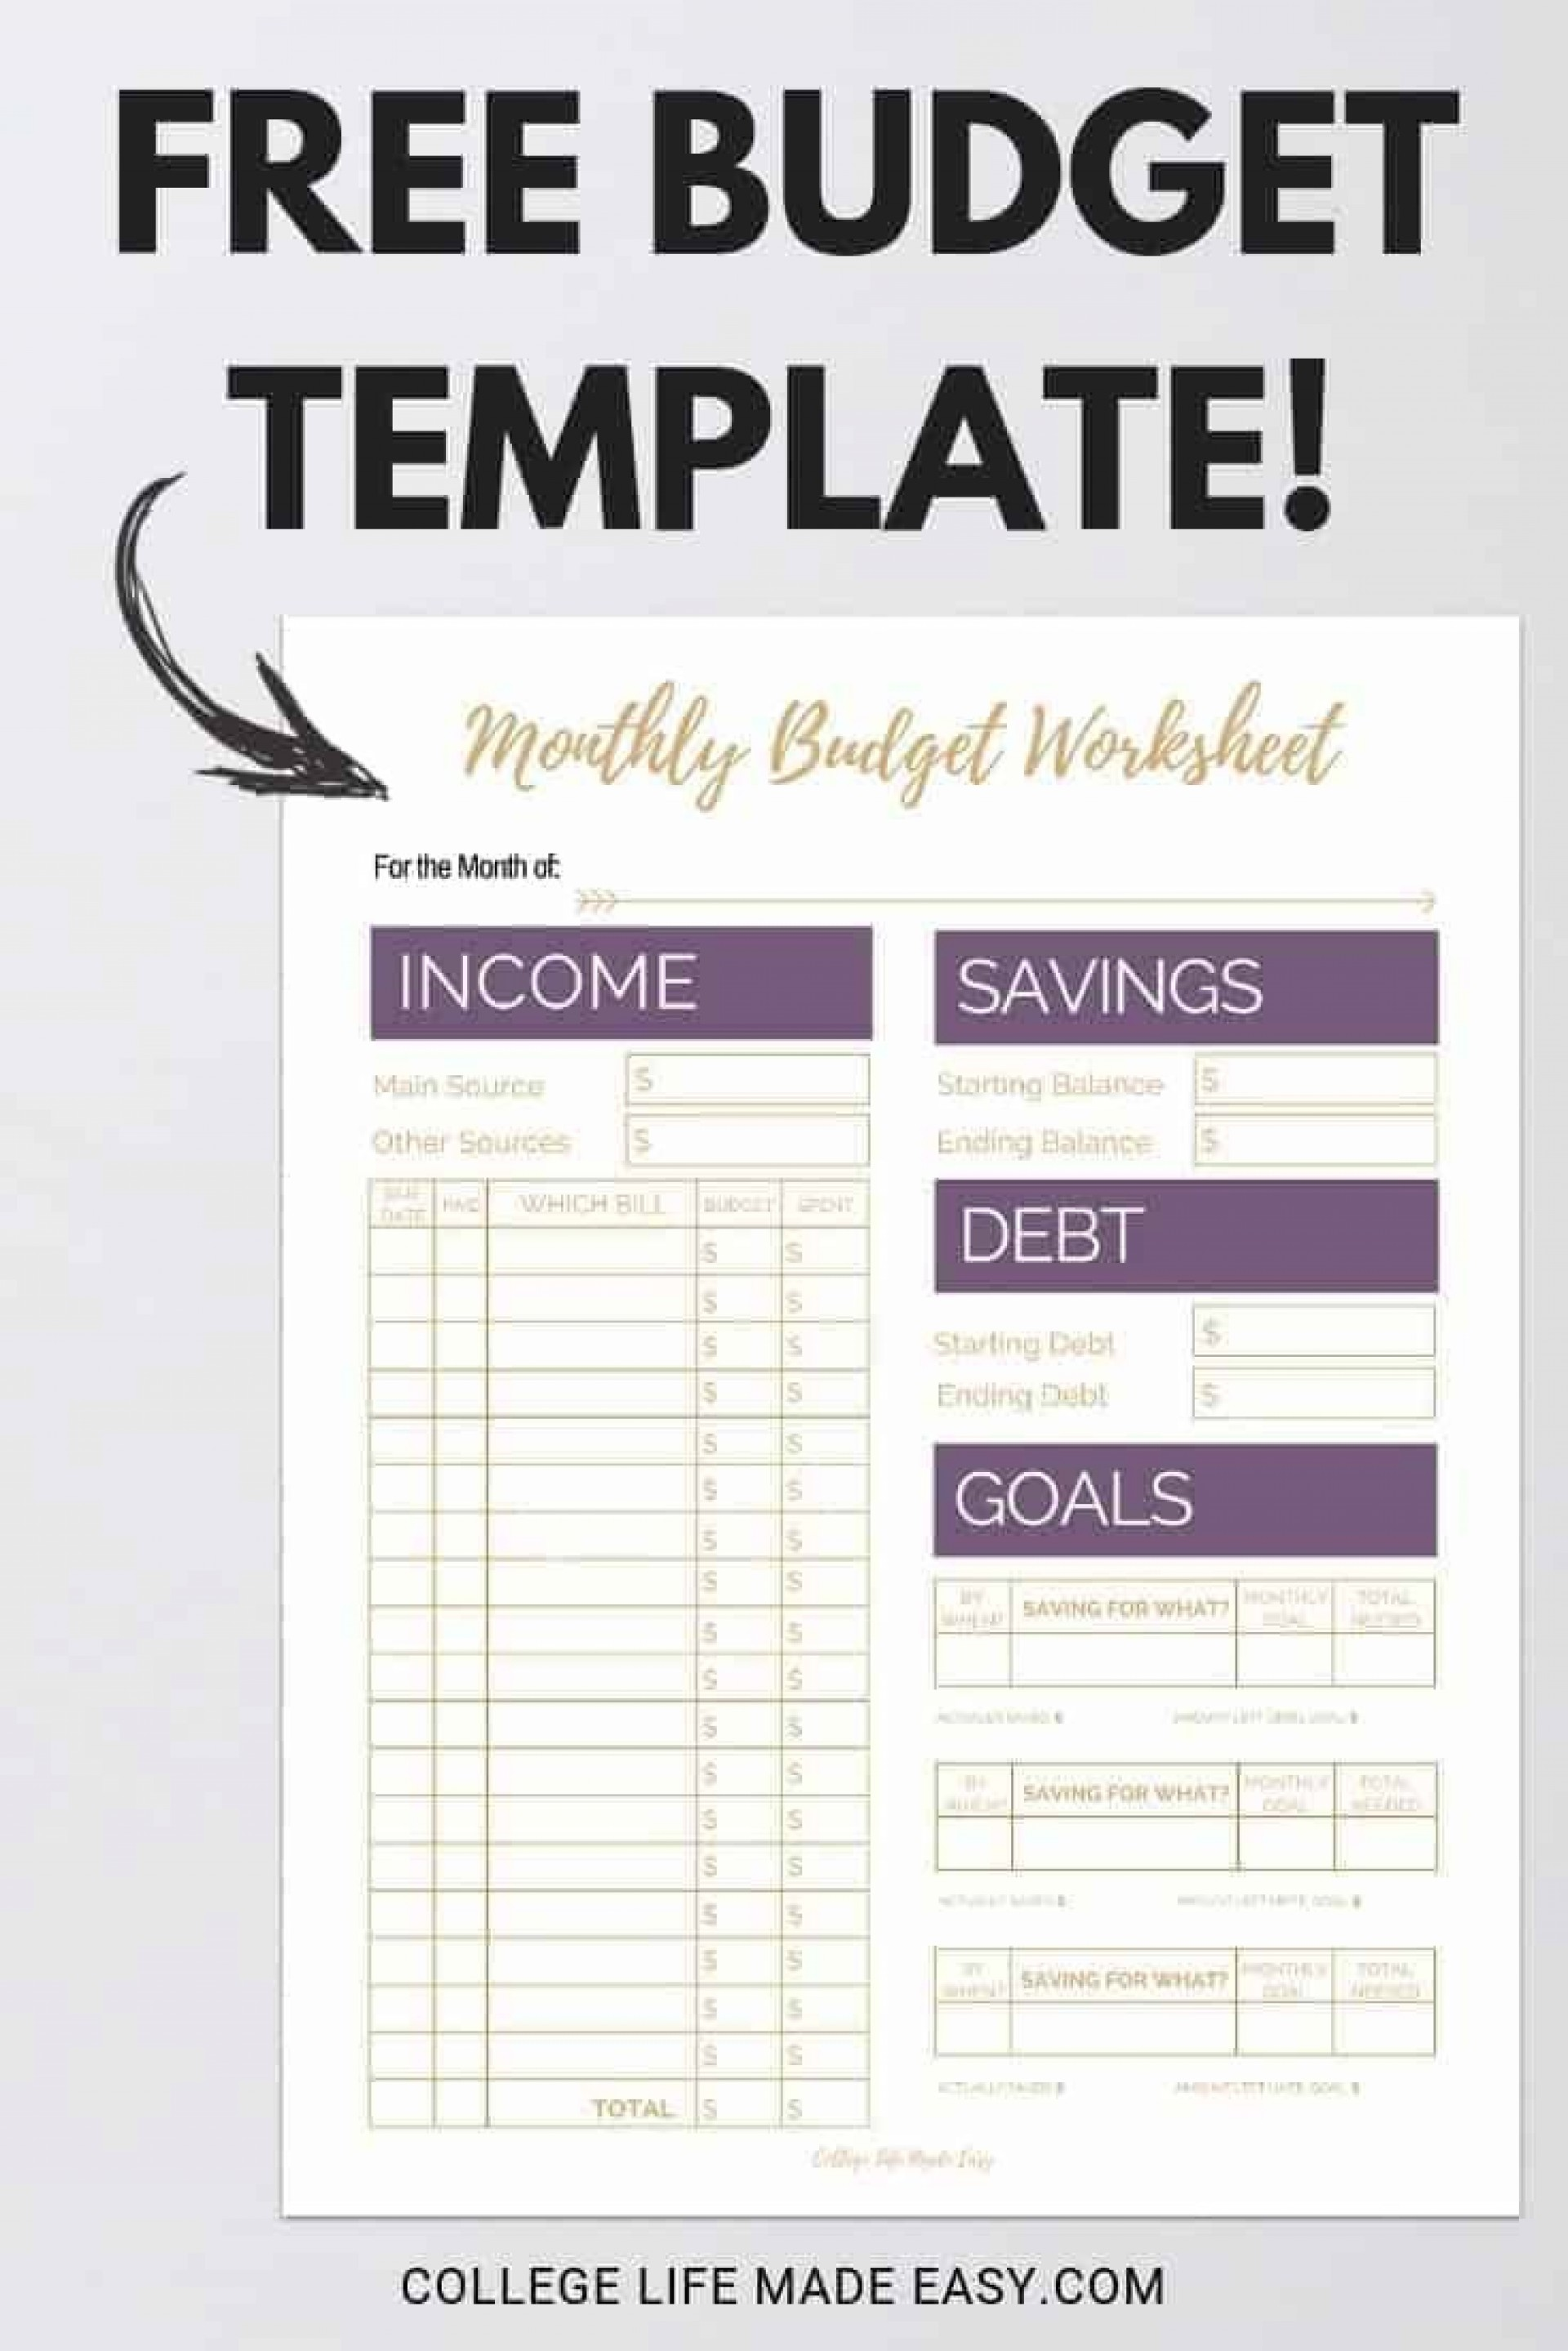 004 Archaicawful Free Printable Home Budget Template Photo  Form Sheet1920